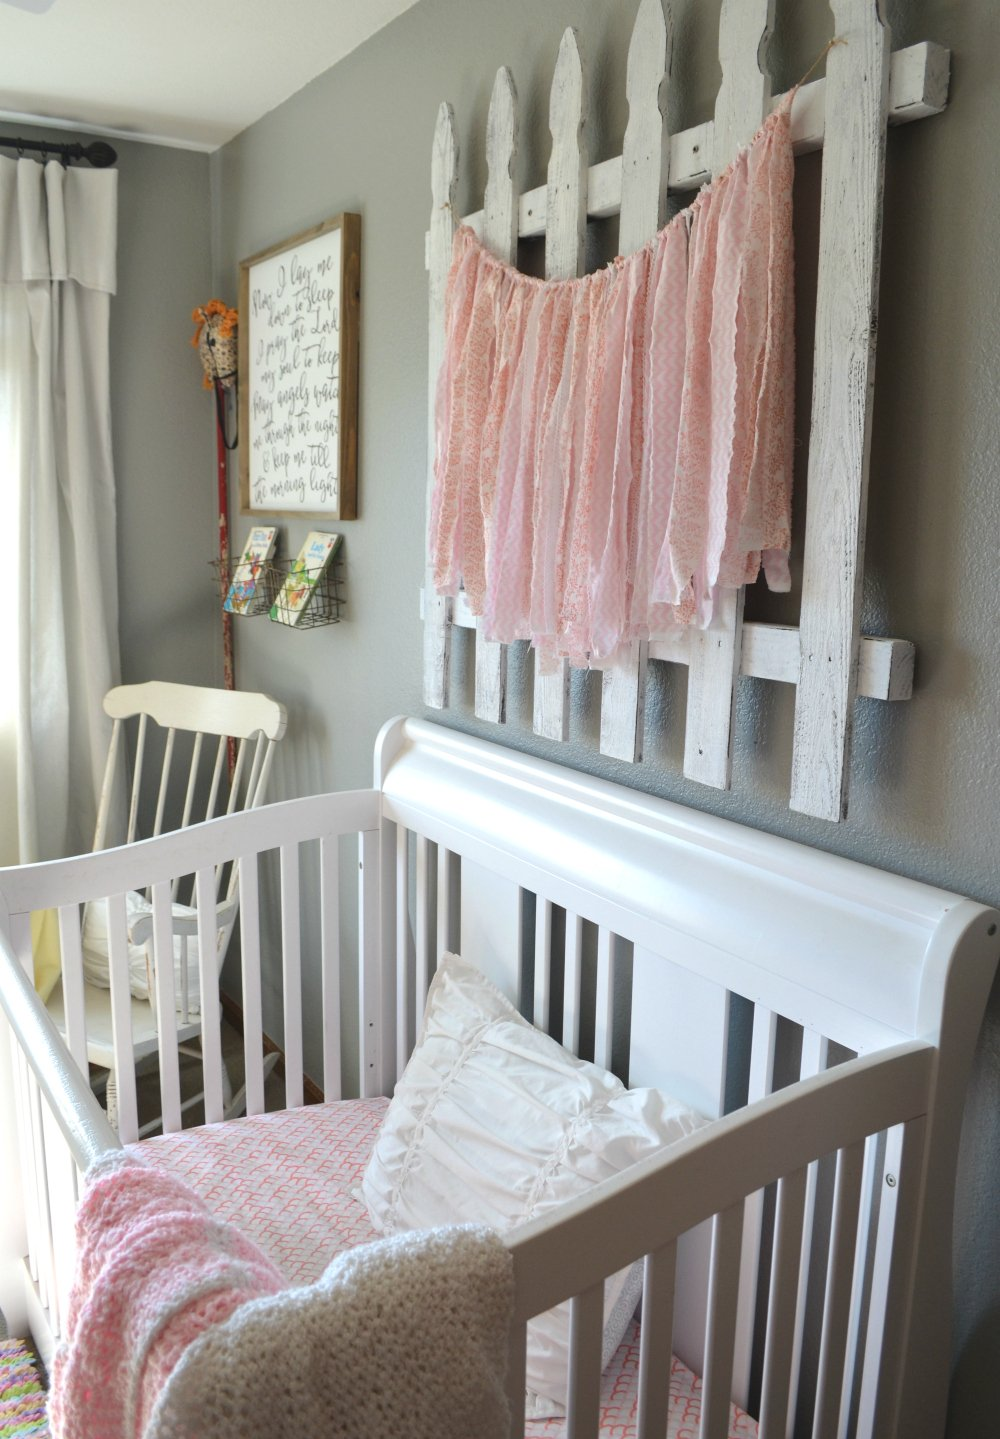 Easy tip to give new wood an aged look. This quick trick will help give any new wood a rustic, vintage look. Picket fence decor in nursery.